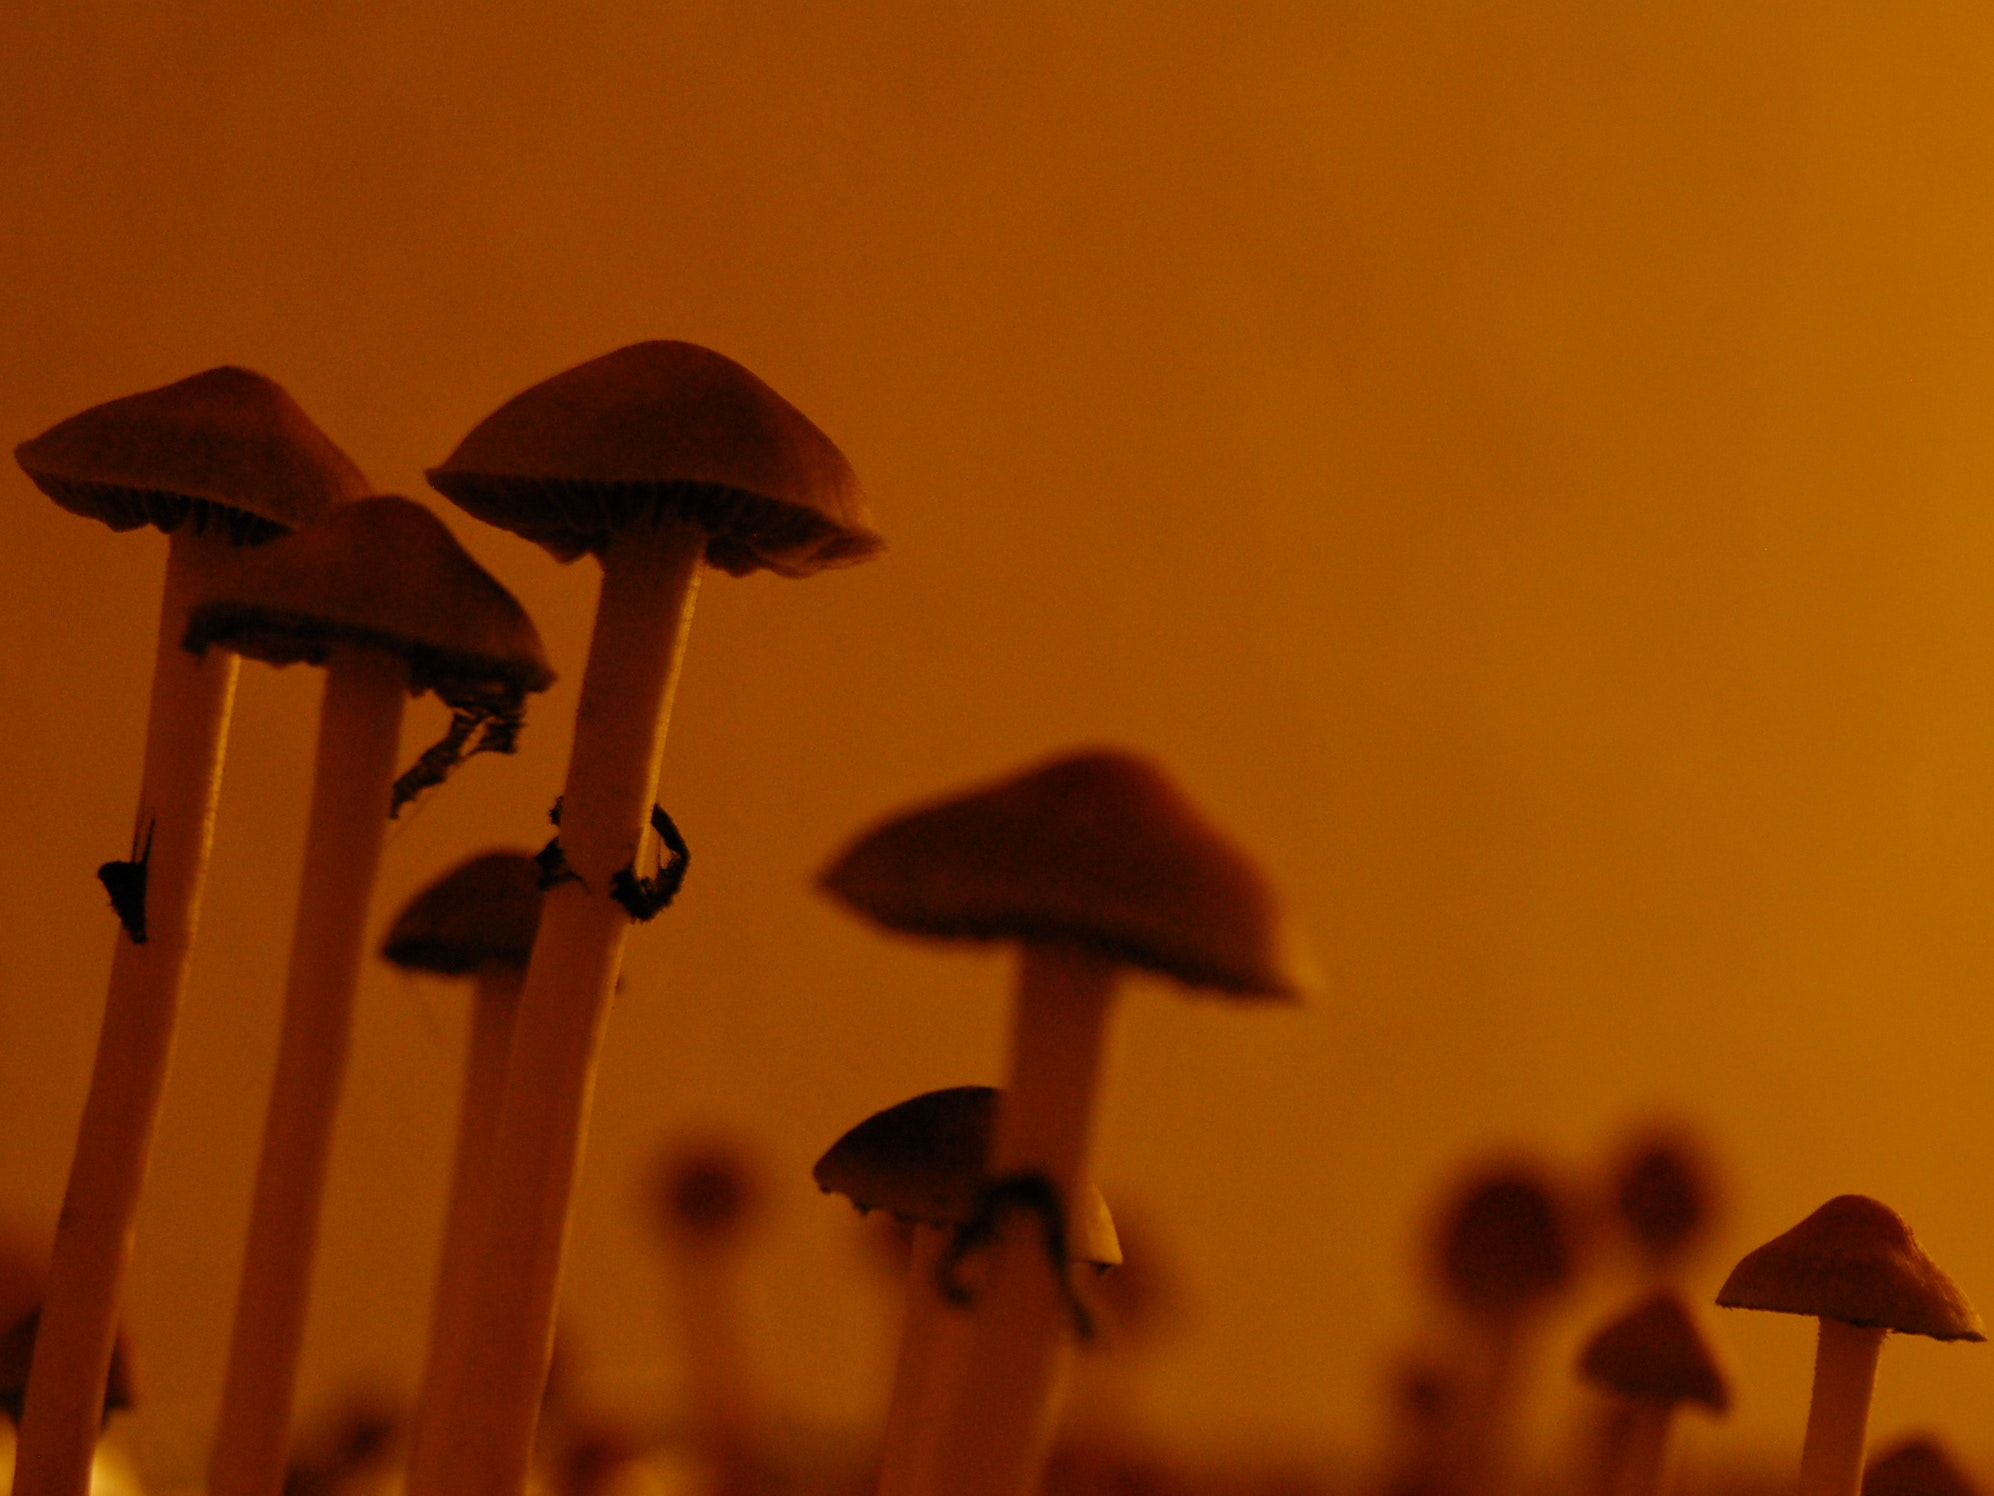 The Latest Prescription Psychedelics Idea? Treat Addiction With Magic Mushrooms